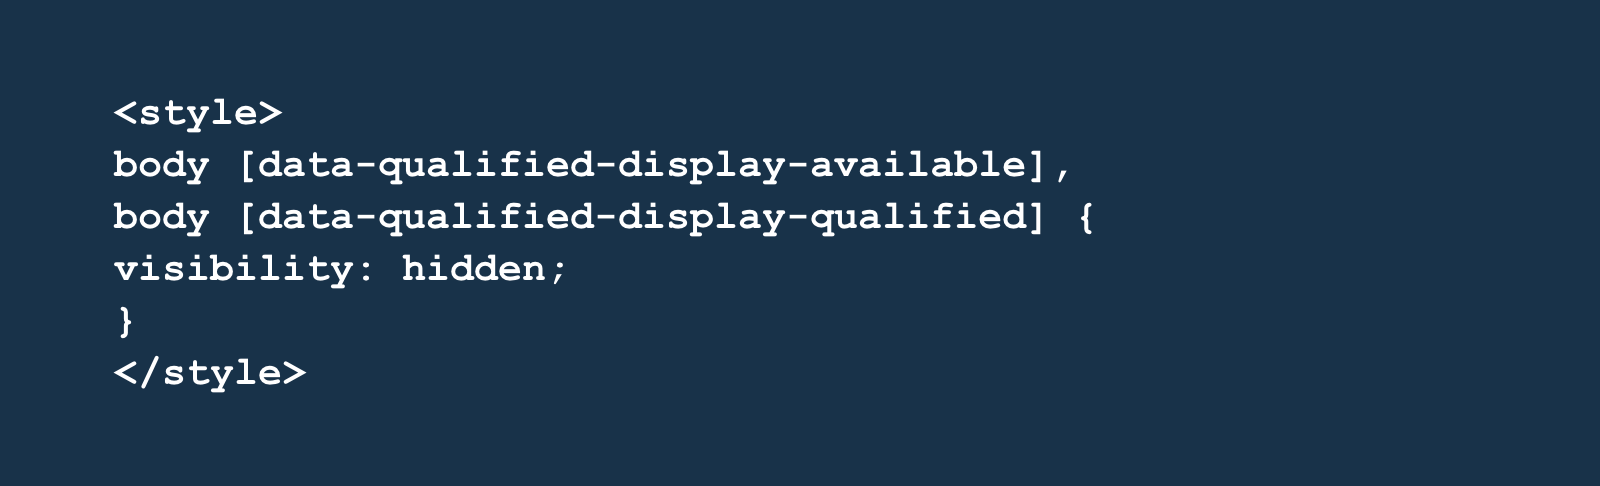 A tweak to your CSS initially hides the button on page load